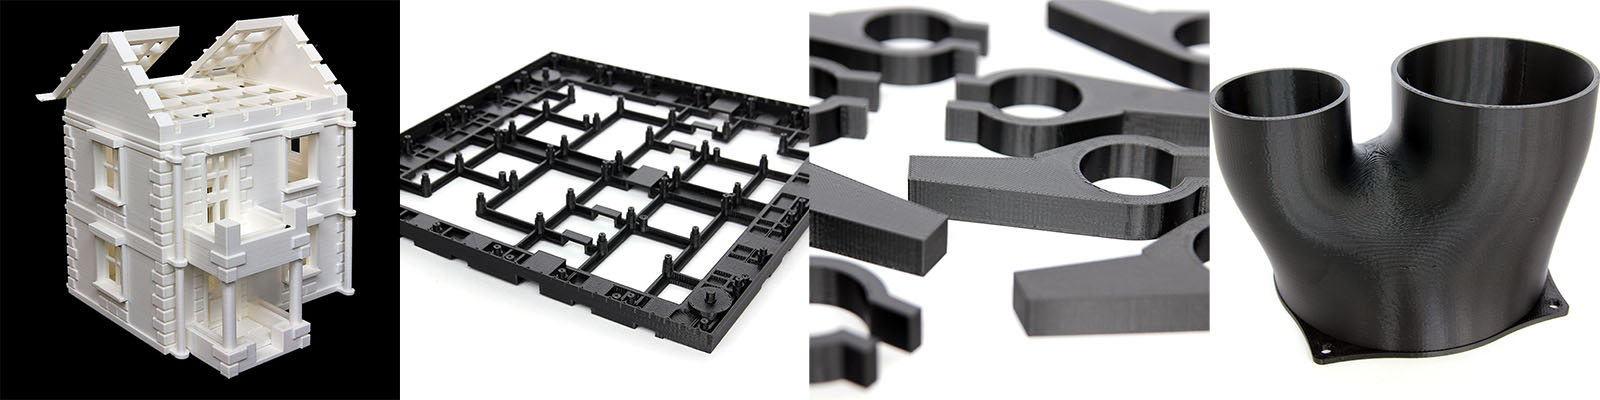 3D Printing Service Examples of previous 3D Printed parts for customers and for T7Design.